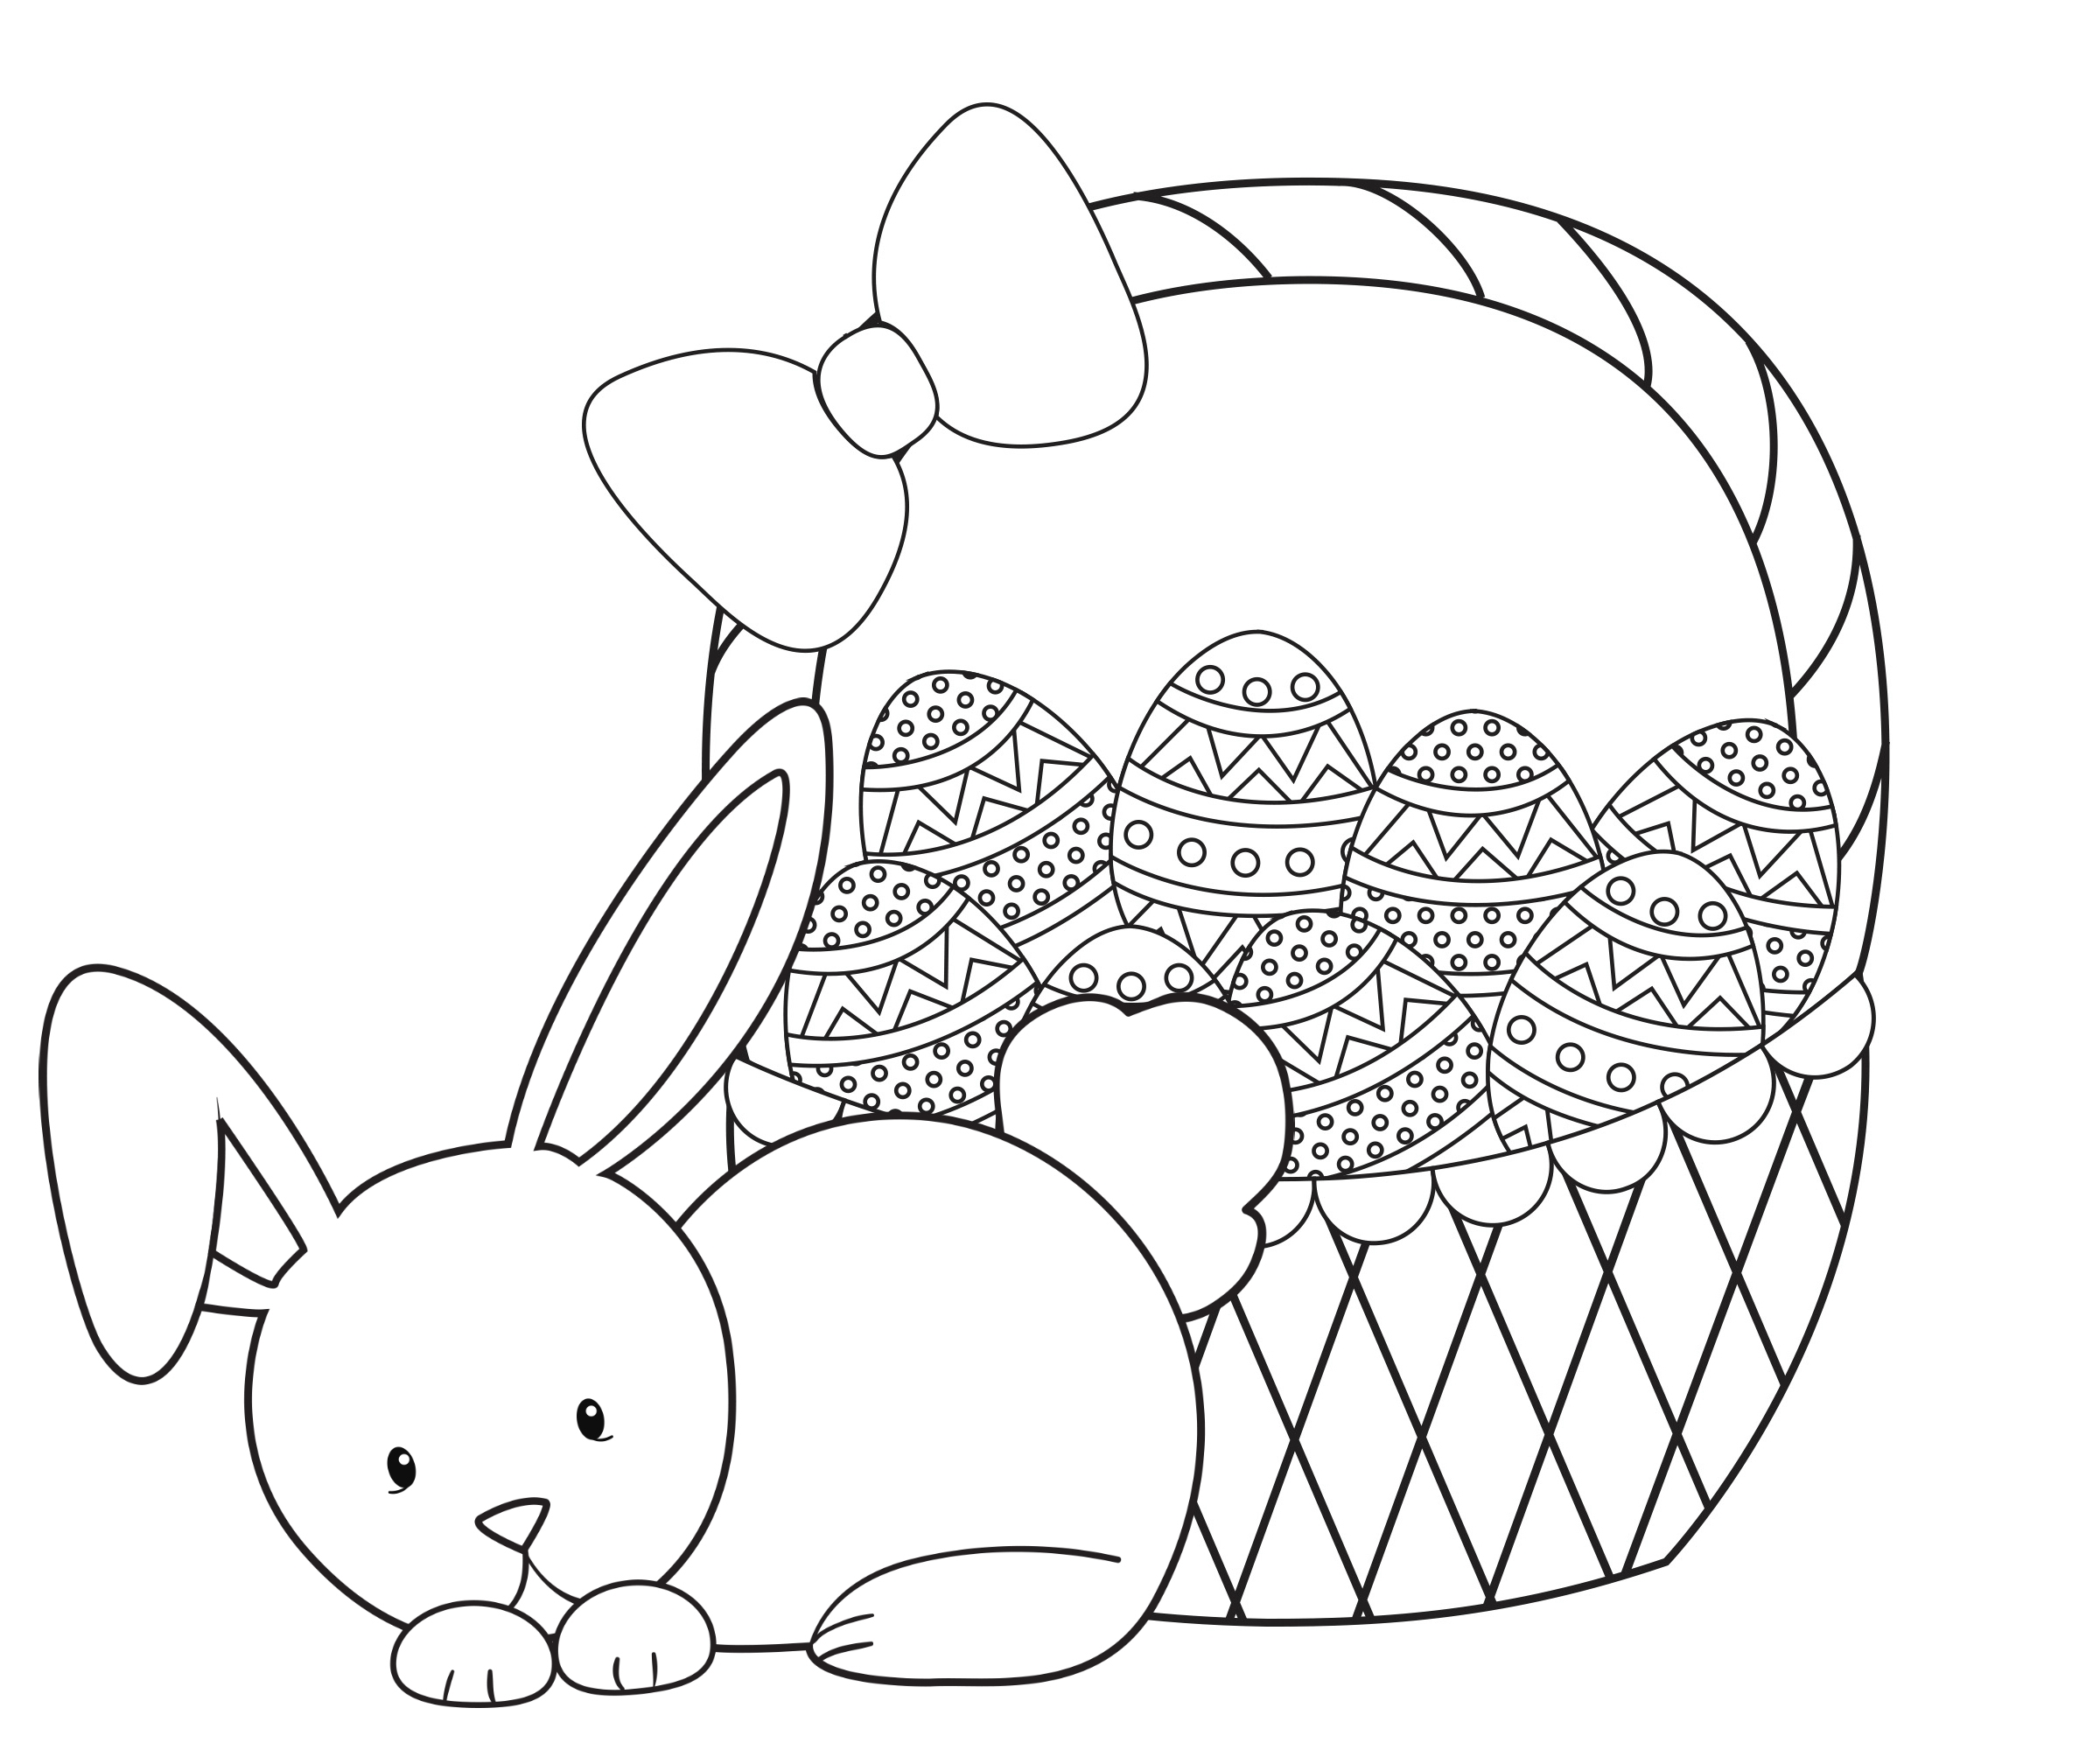 2400x2000 Funny Easter Bunny And Chicks Coloring Page For Kids Coloring